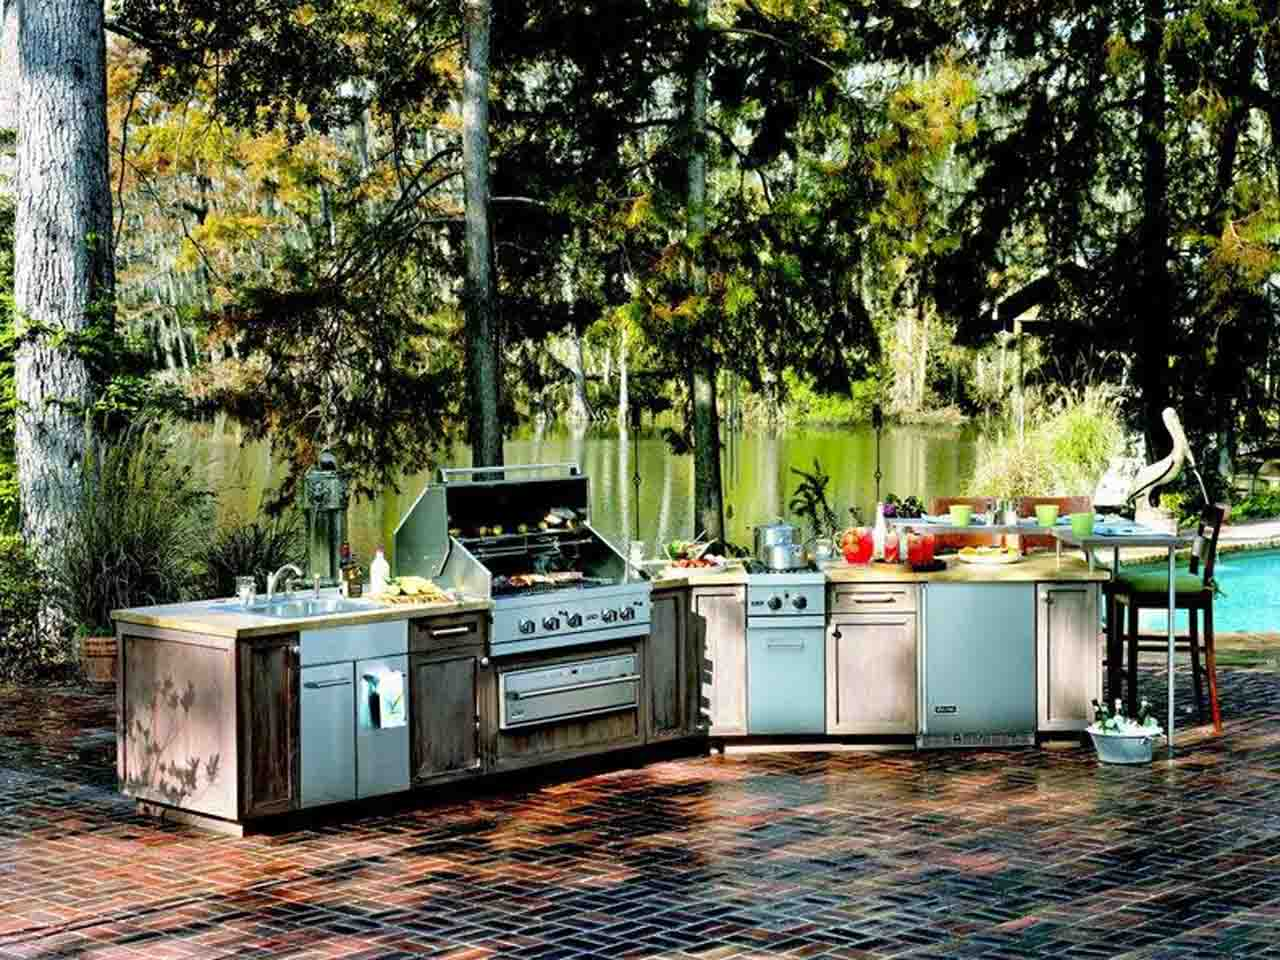 Decorating Ideas For Build Kitchen Outdoor With Custom Furniture: Kitchen outdoor as kitchen outdoor design for the interior design of your home kitchen as inspiration interior decoration